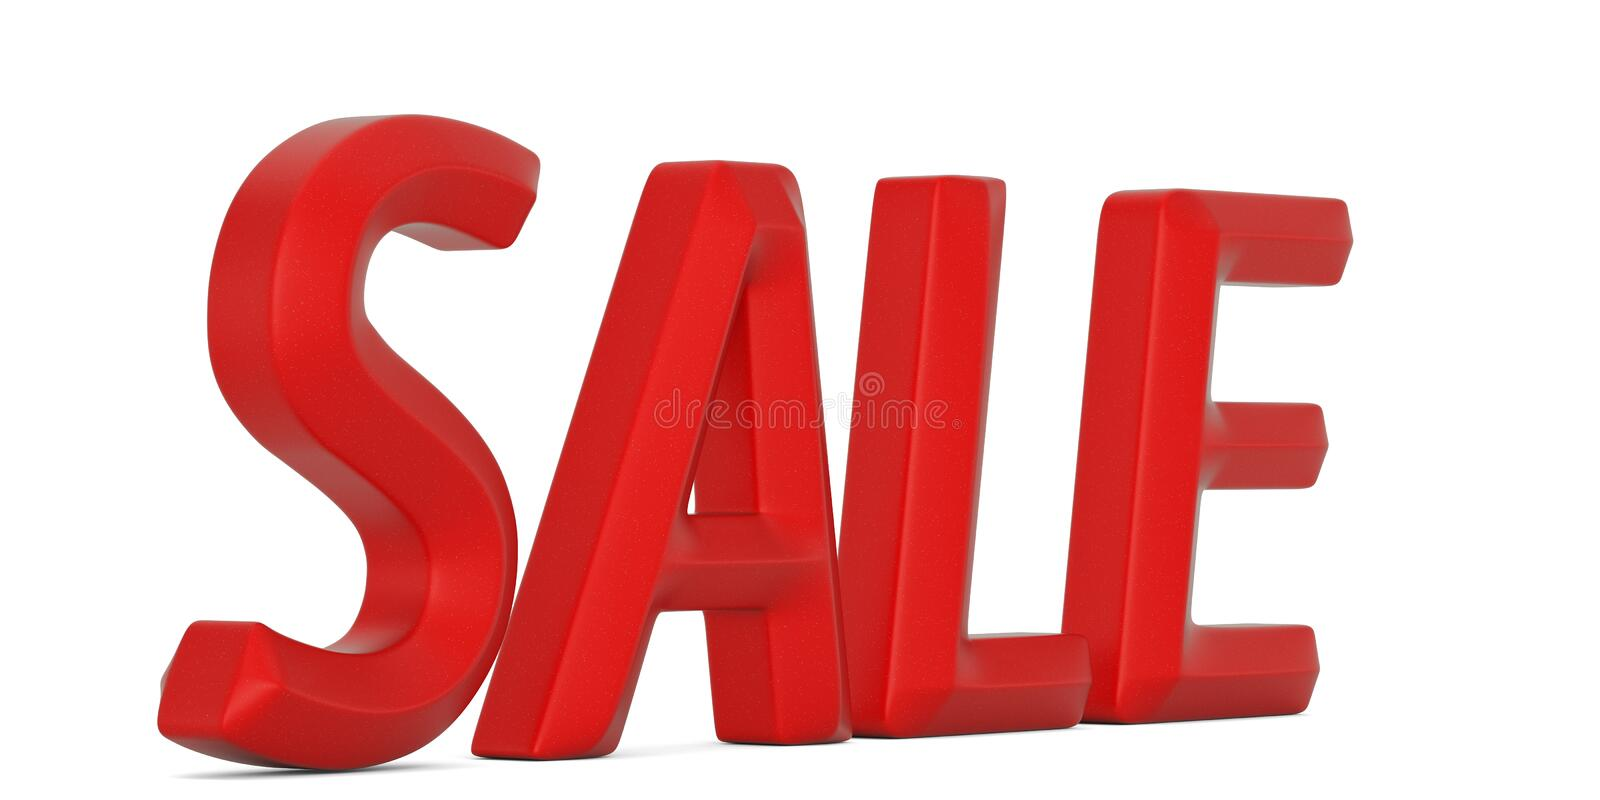 3d image of sale red text on white background. 3D illustration.  royalty free illustration